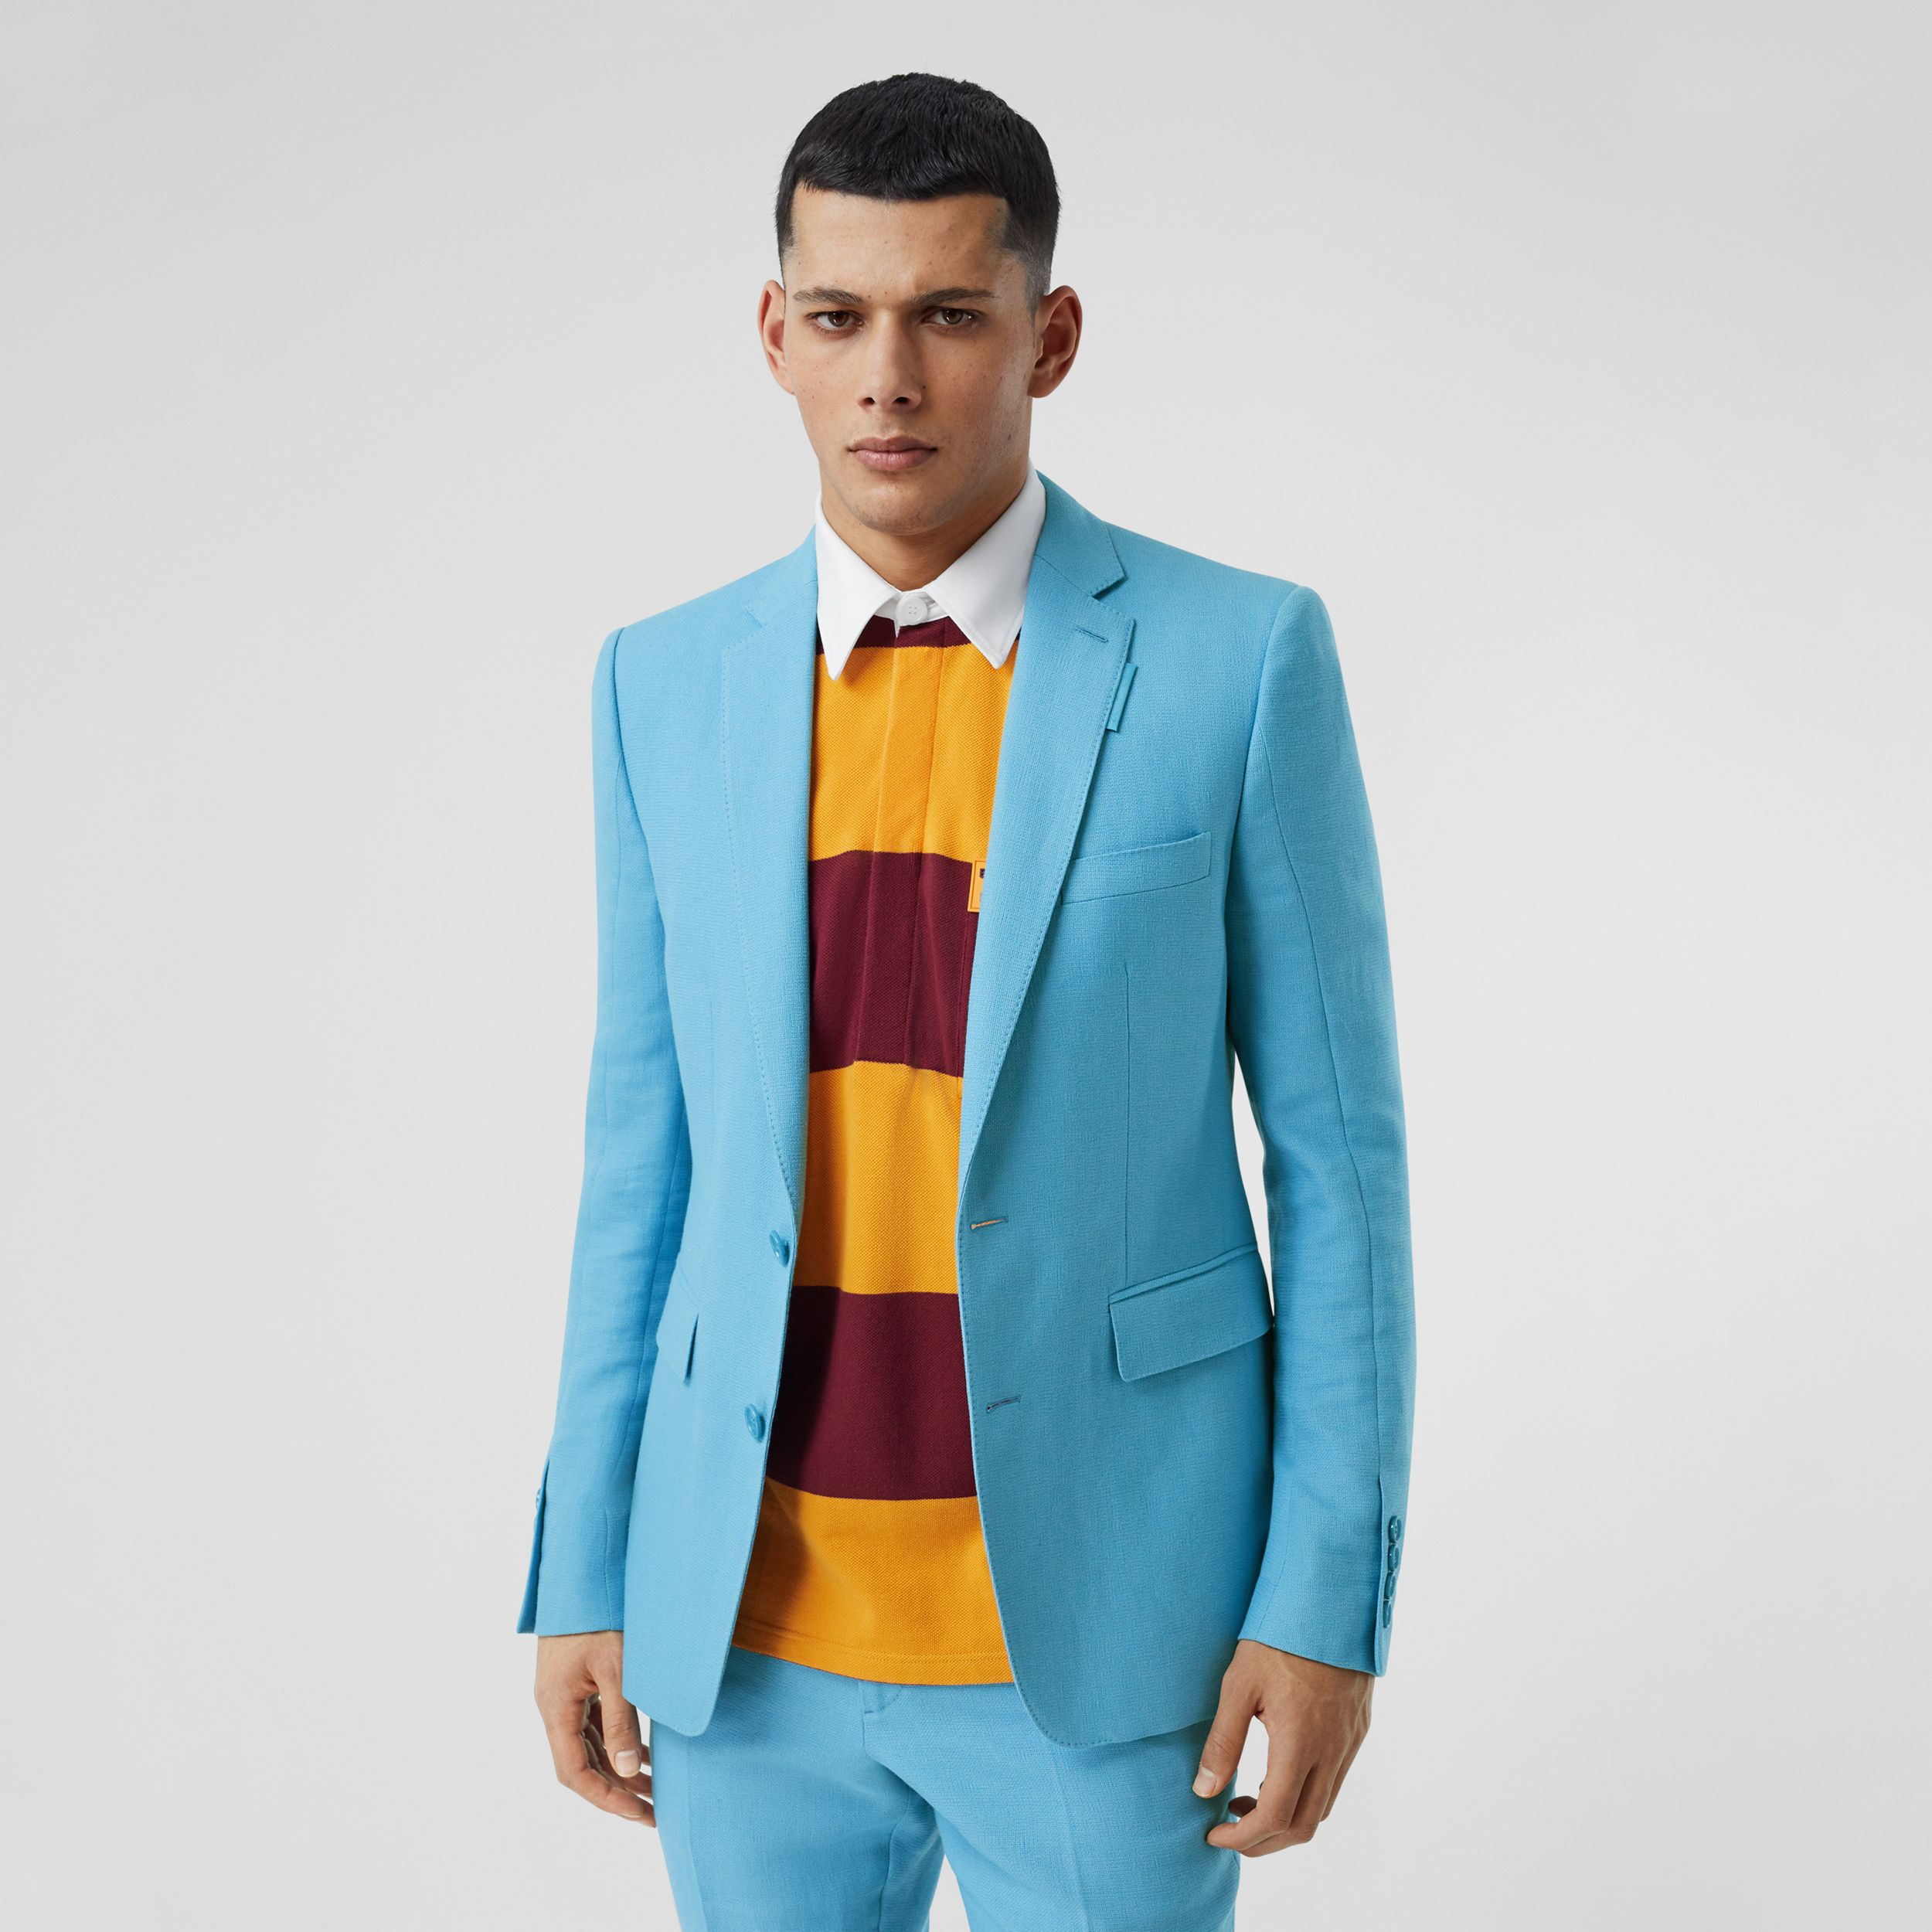 English Fit Wool Ramie Tailored Jacket in Blue Topaz | Burberry - 1